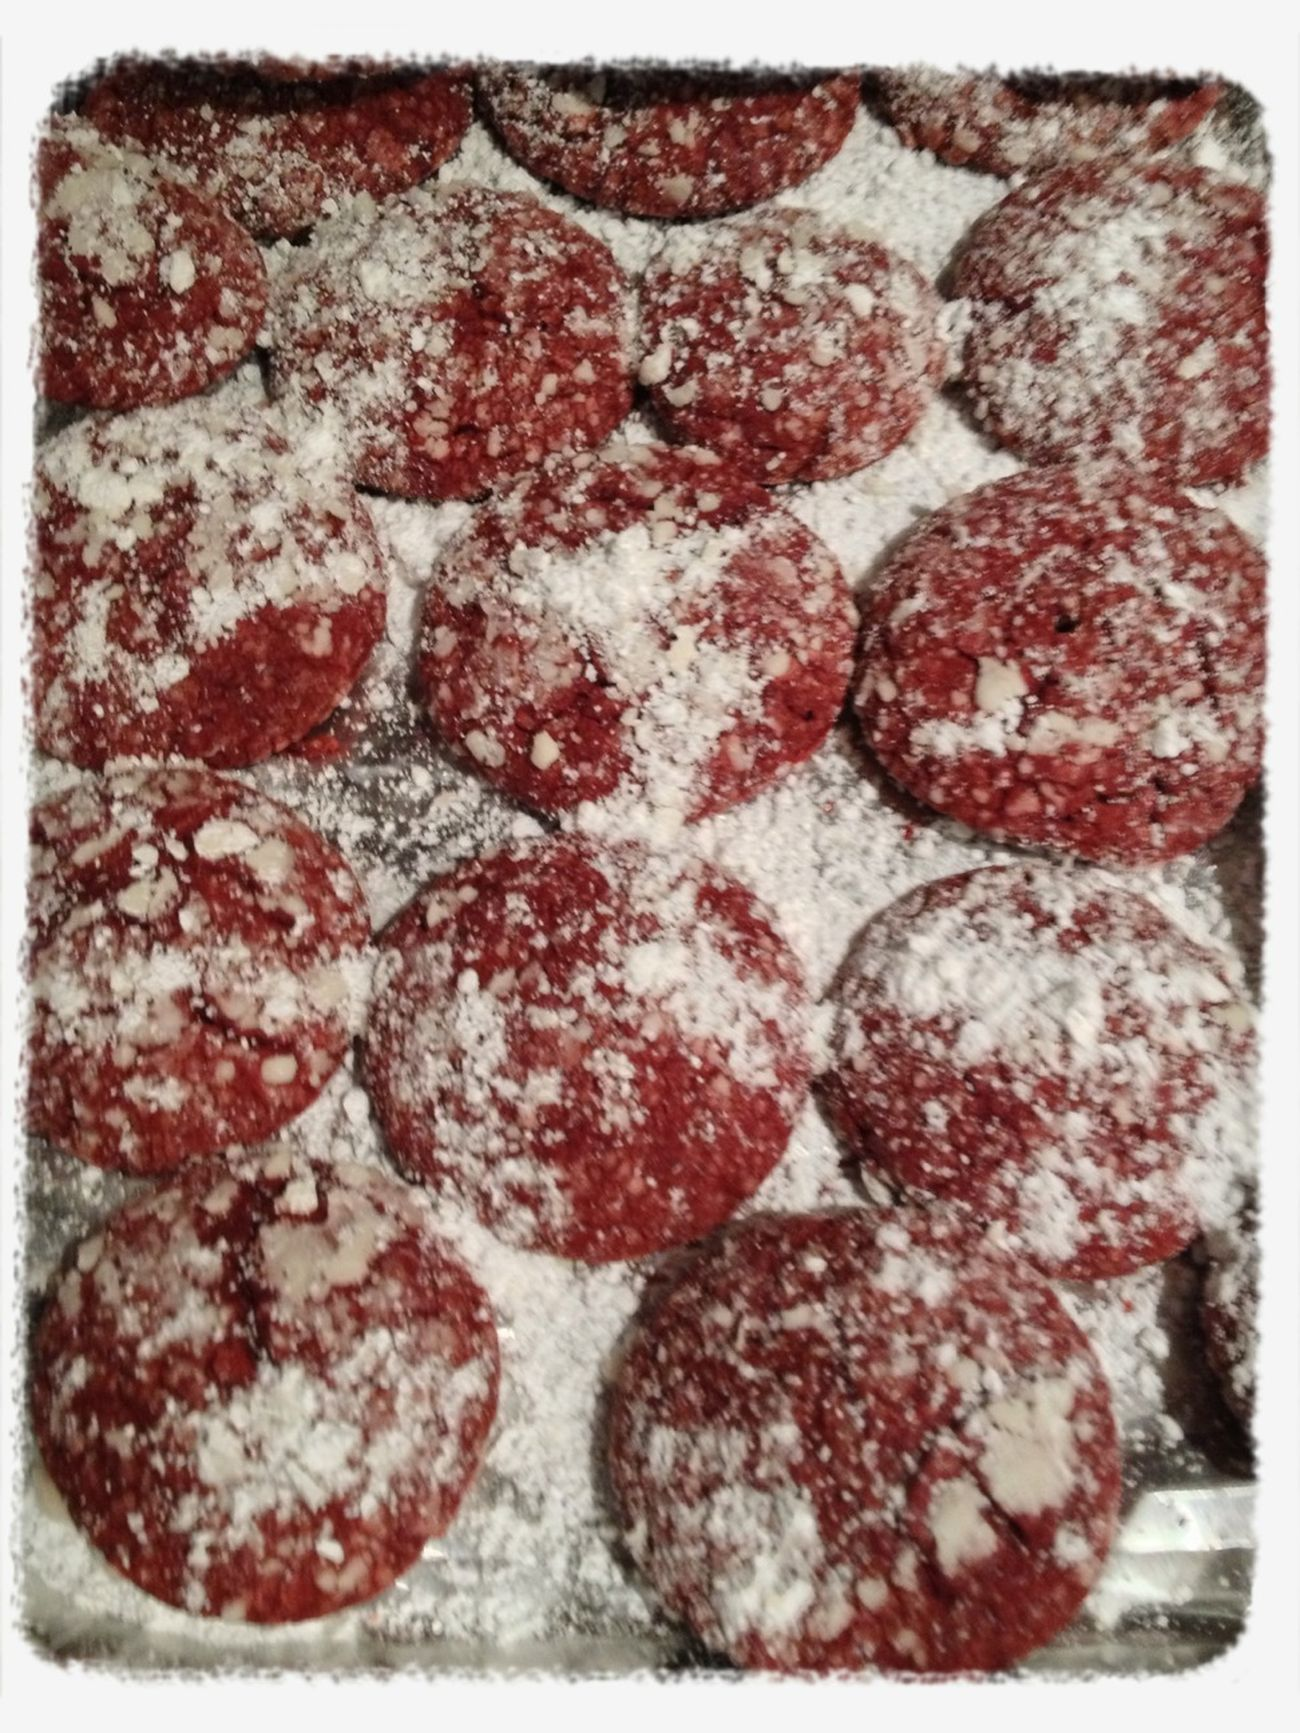 My New Experiment Of Making Red Velvet Crinkle Cookies!